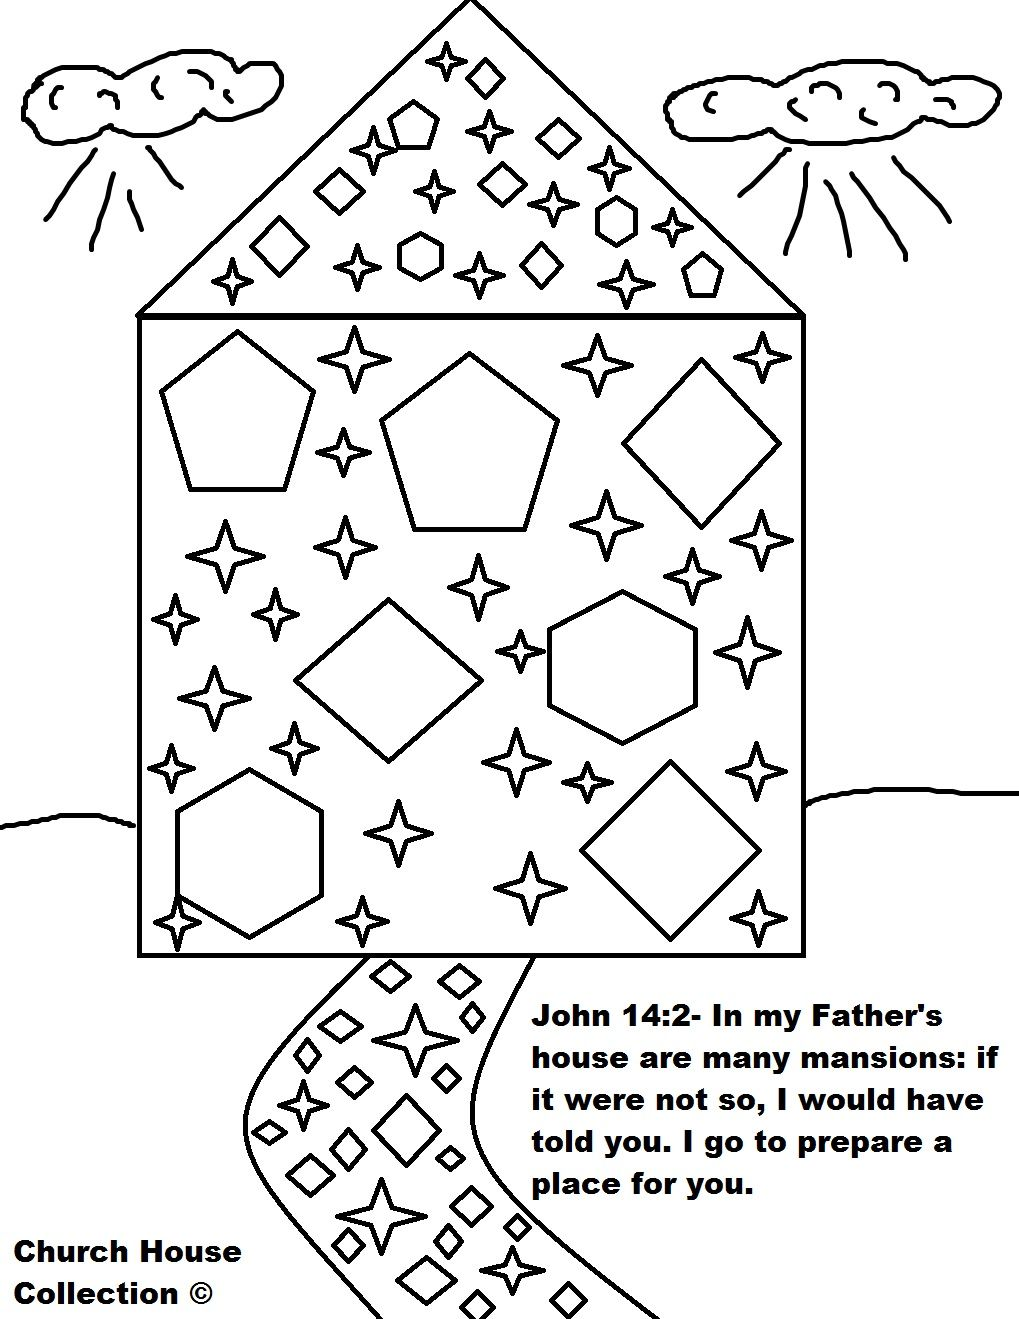 Free coloring pages elijah goes to heaven - Mansions In Heaven And Steets Of Gold John 14 2 In My Father S House Are Many Mansions Coloring Page Jpg 1019 1319 Bijbelonderwijs Bidden Pinterest